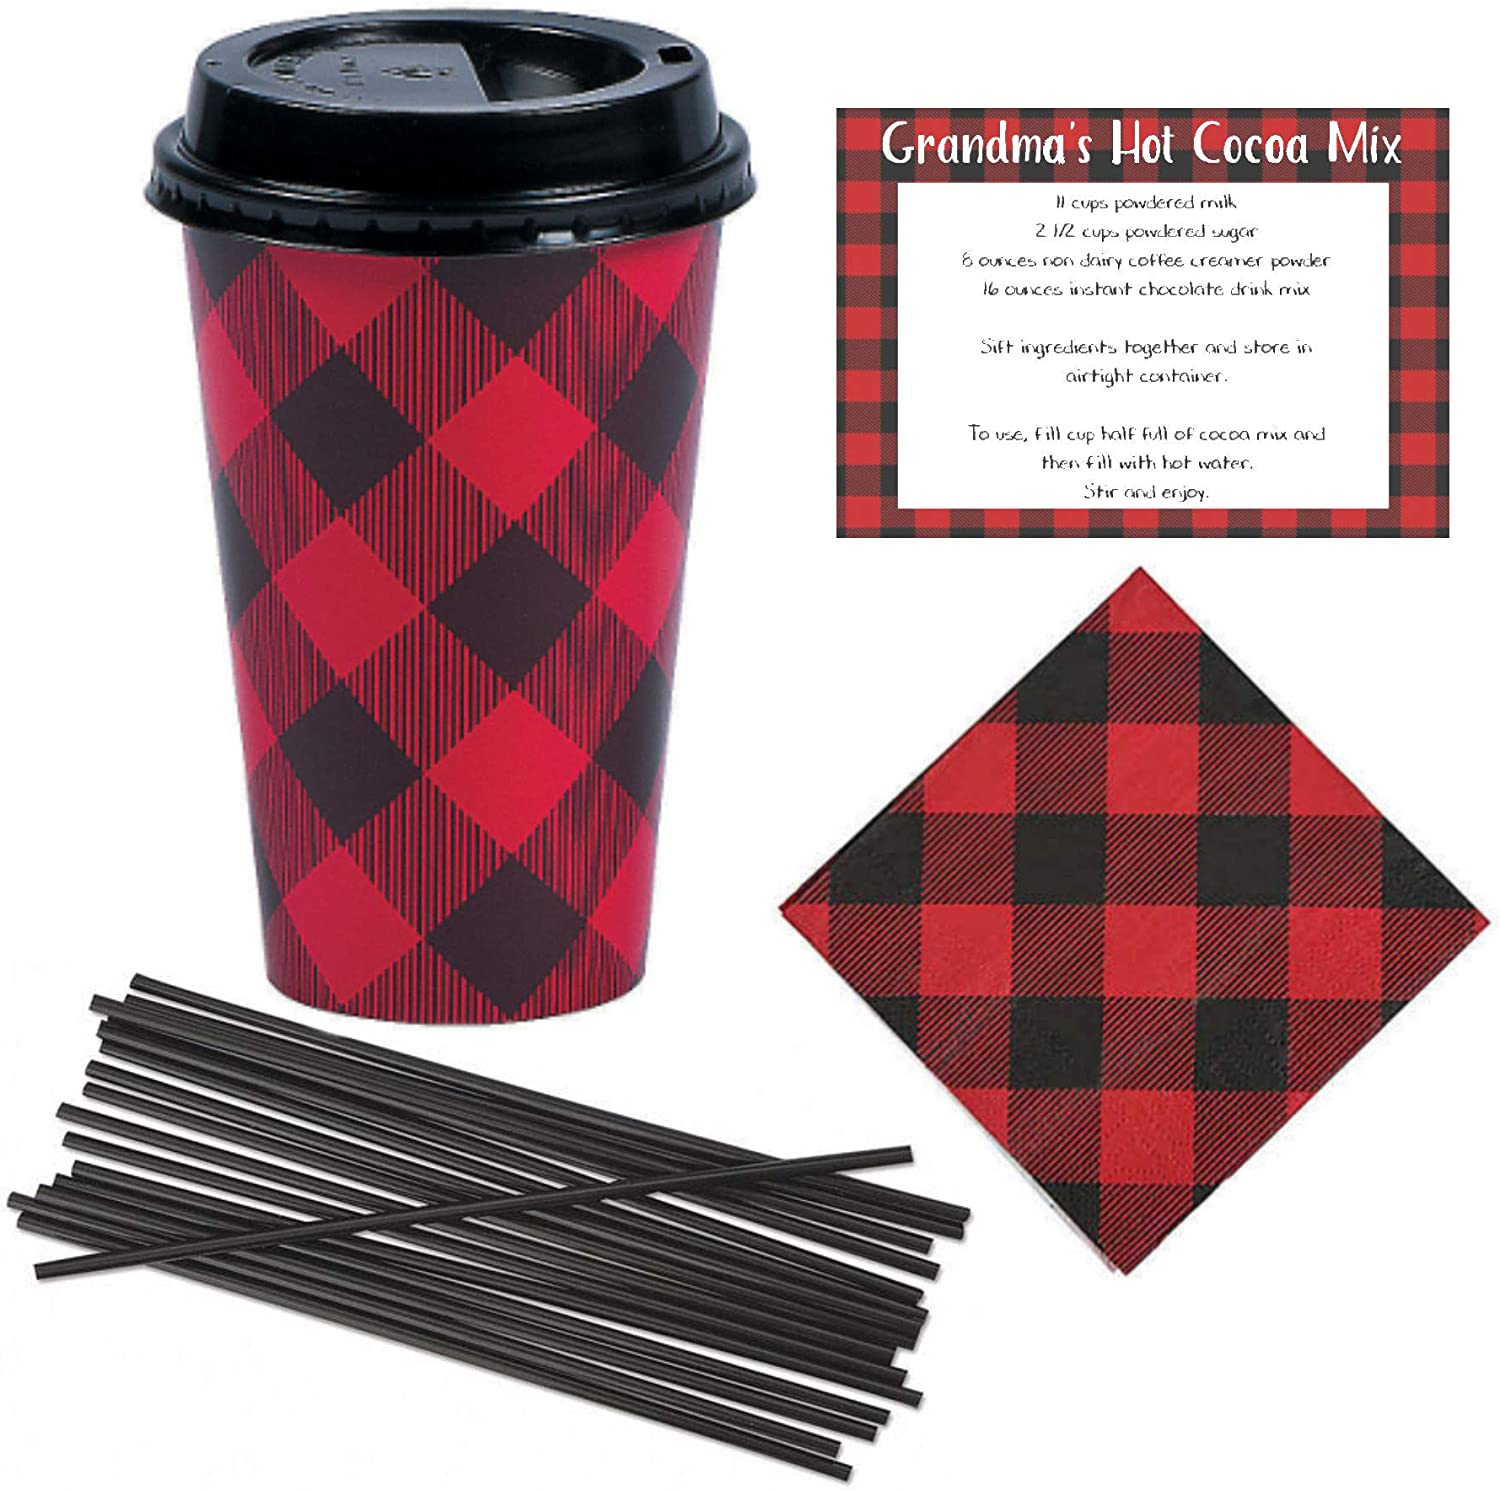 Farmhouse Decor Disposable Coffee or Hot Chocolate Cups (16 oz) with Lids, Napkins, Stir Straws and Recipe - Red & Black Buffalo Plaid - Cocoa Bar Kit Lumberjack Party Supplies Christmas(24 Count Set)